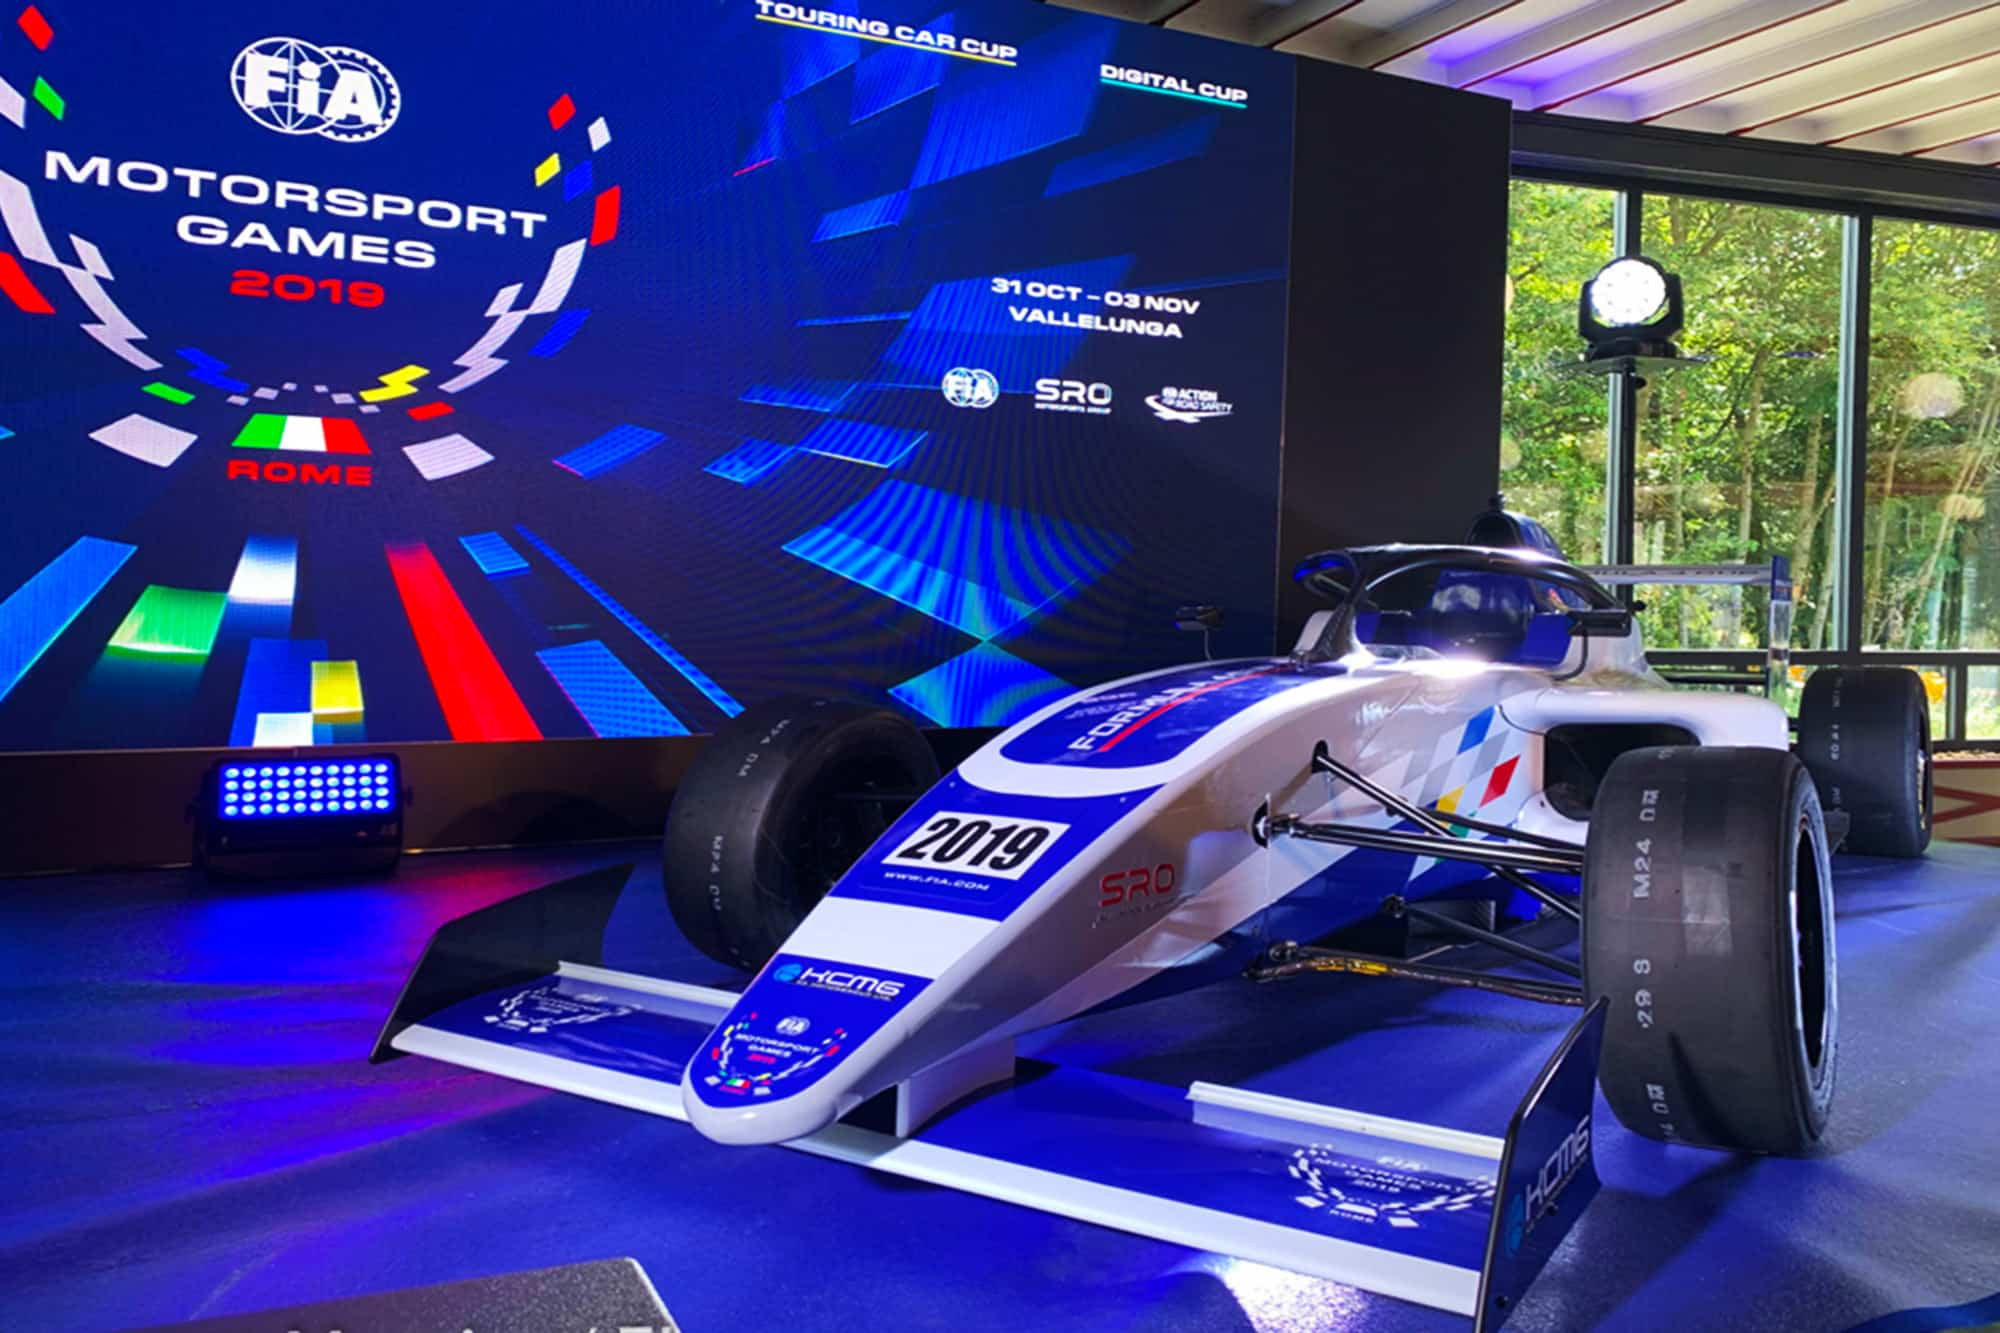 Presentation of FIA Motor Sport Games 2019